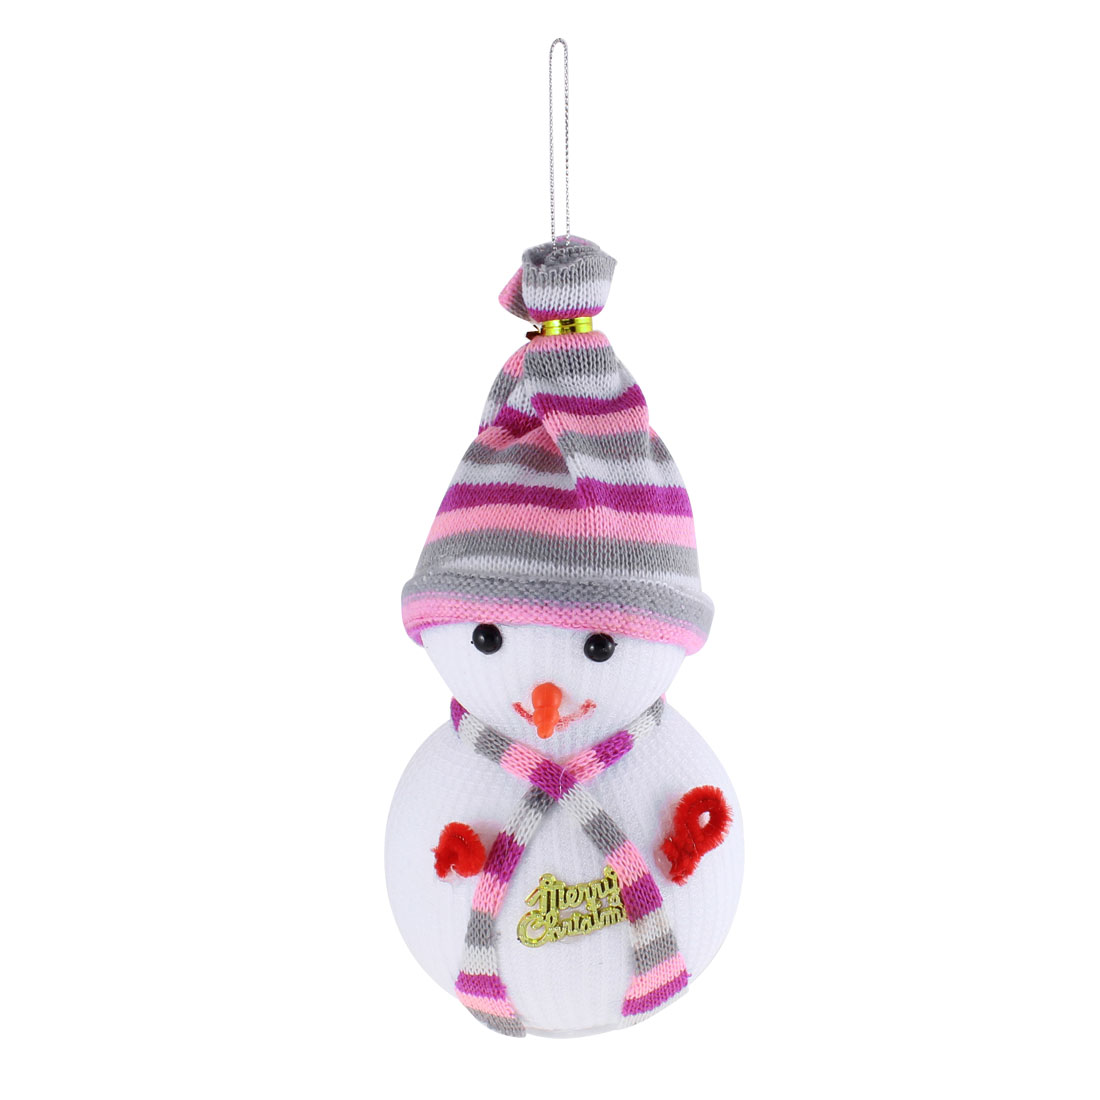 Snowman Shape Christmas Toy Doll Gift White for Christmas Tree Dangling Decor